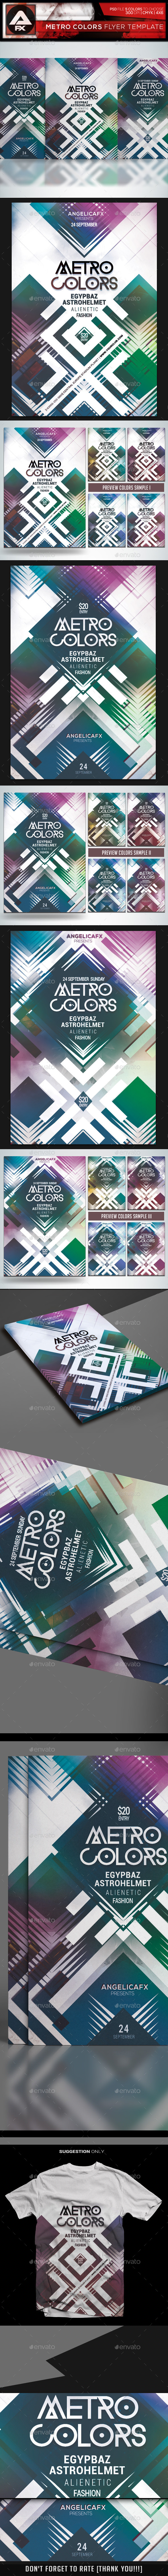 GraphicRiver Metro Colors Flyer Template 10319299